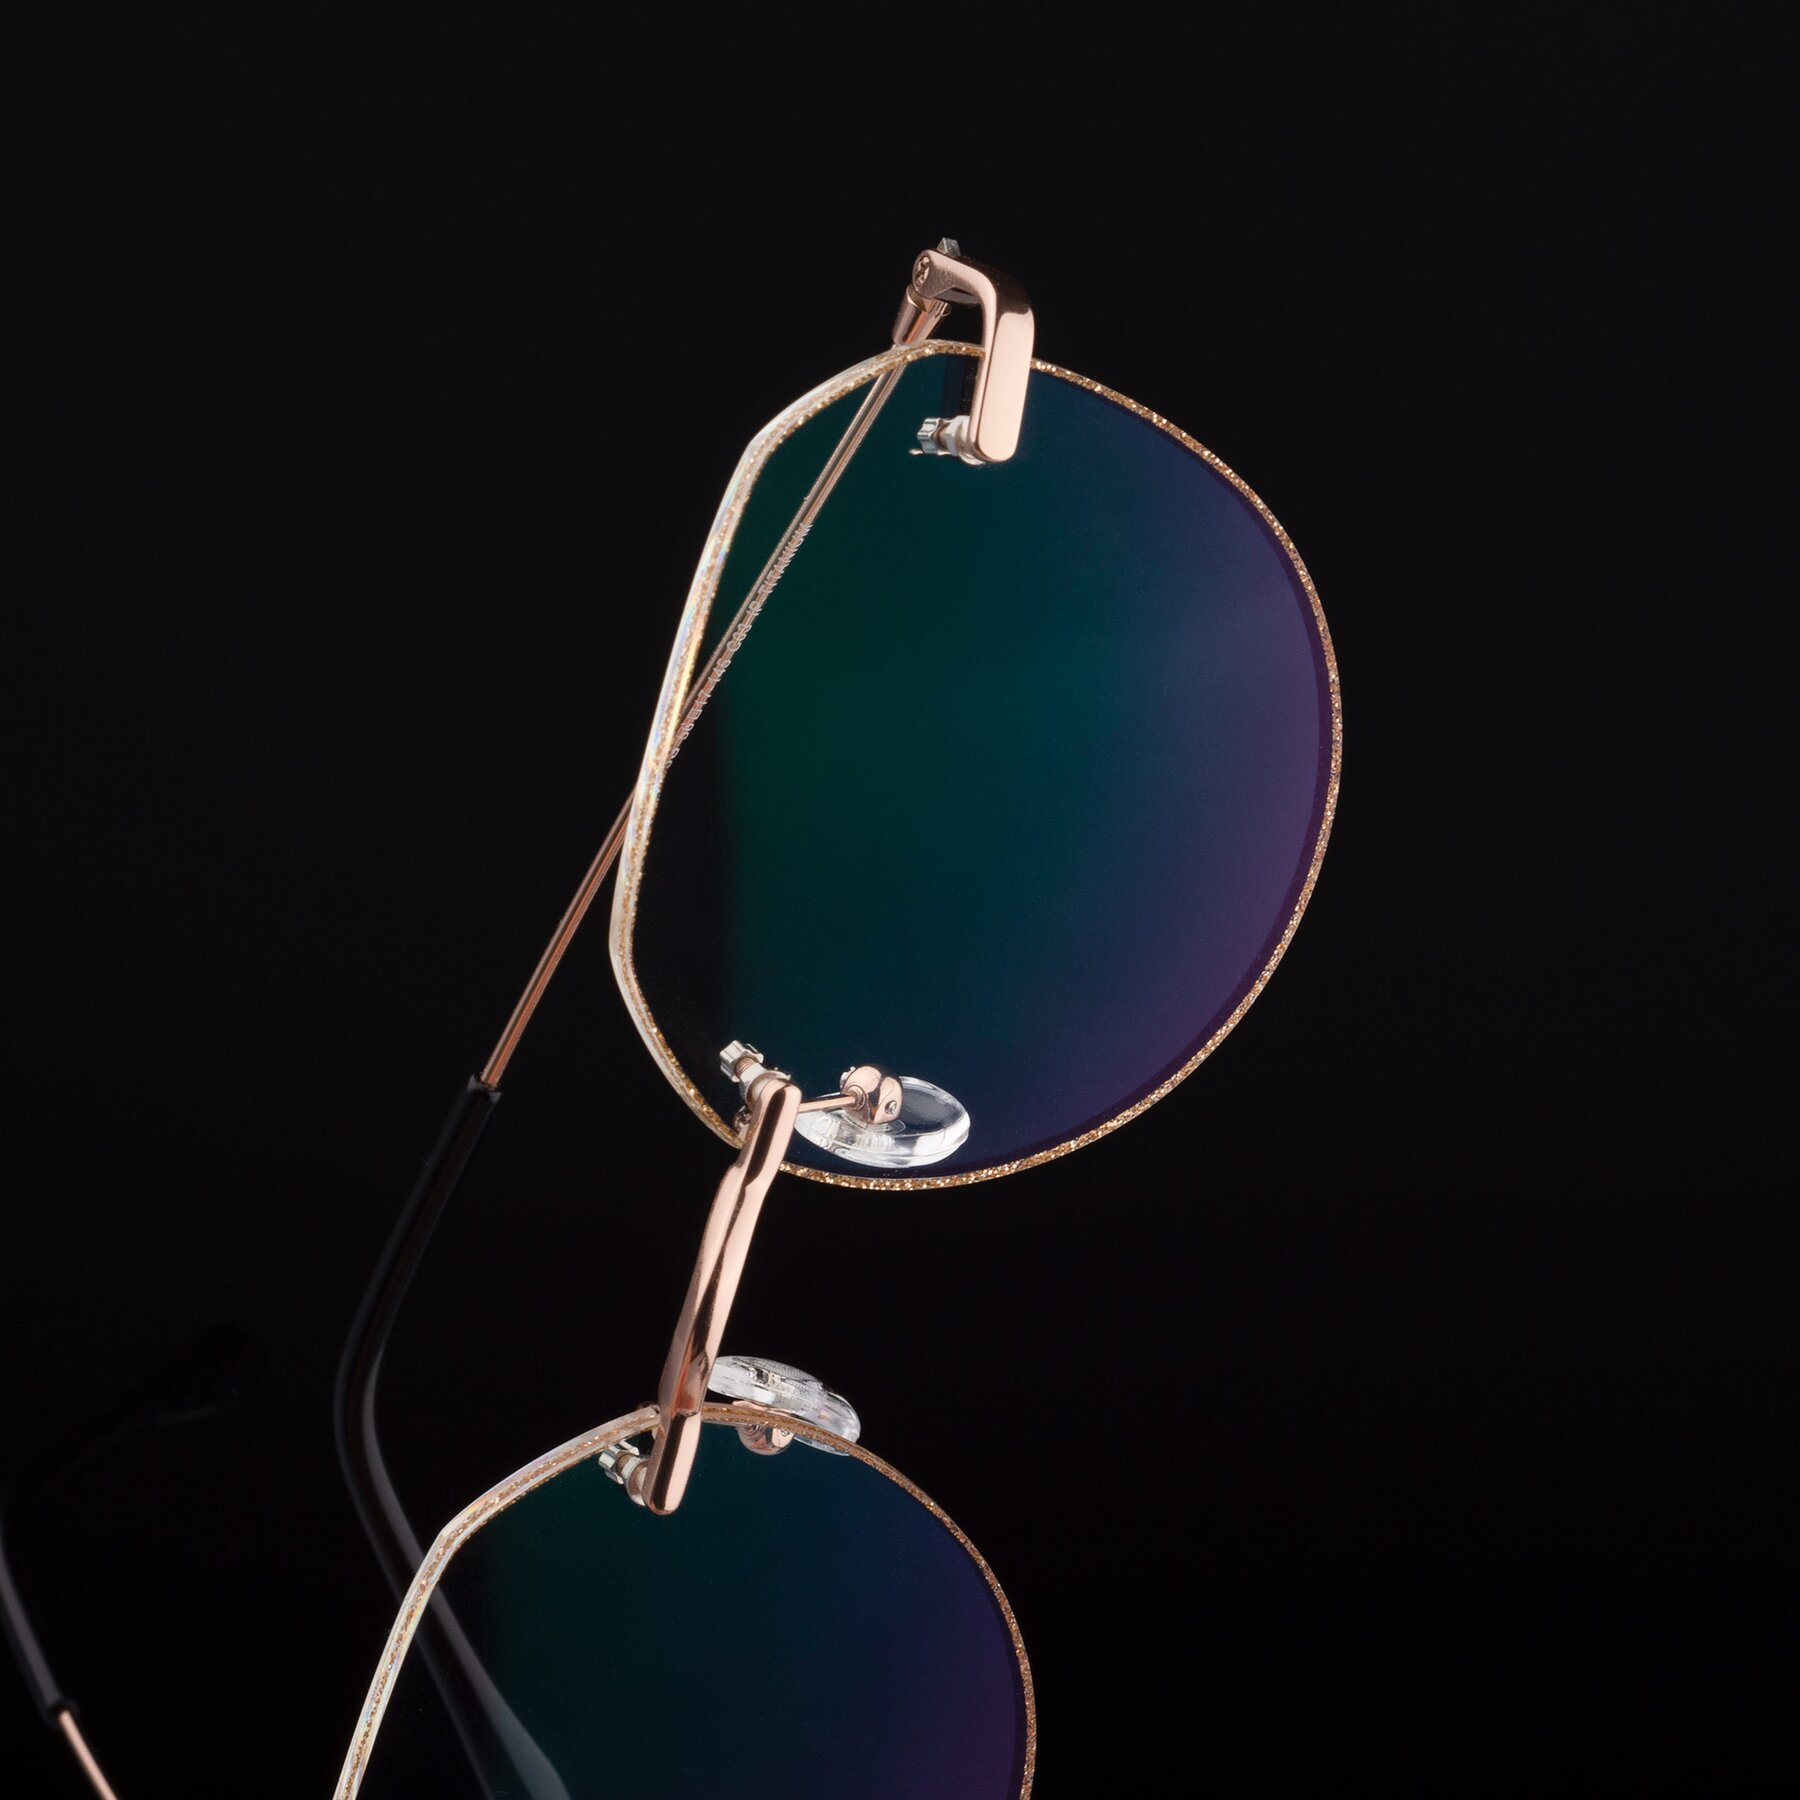 Women's lifestyle photography #1 of 1960S in Rose Gold-Gold Glitter with Clear Eyeglass Lenses